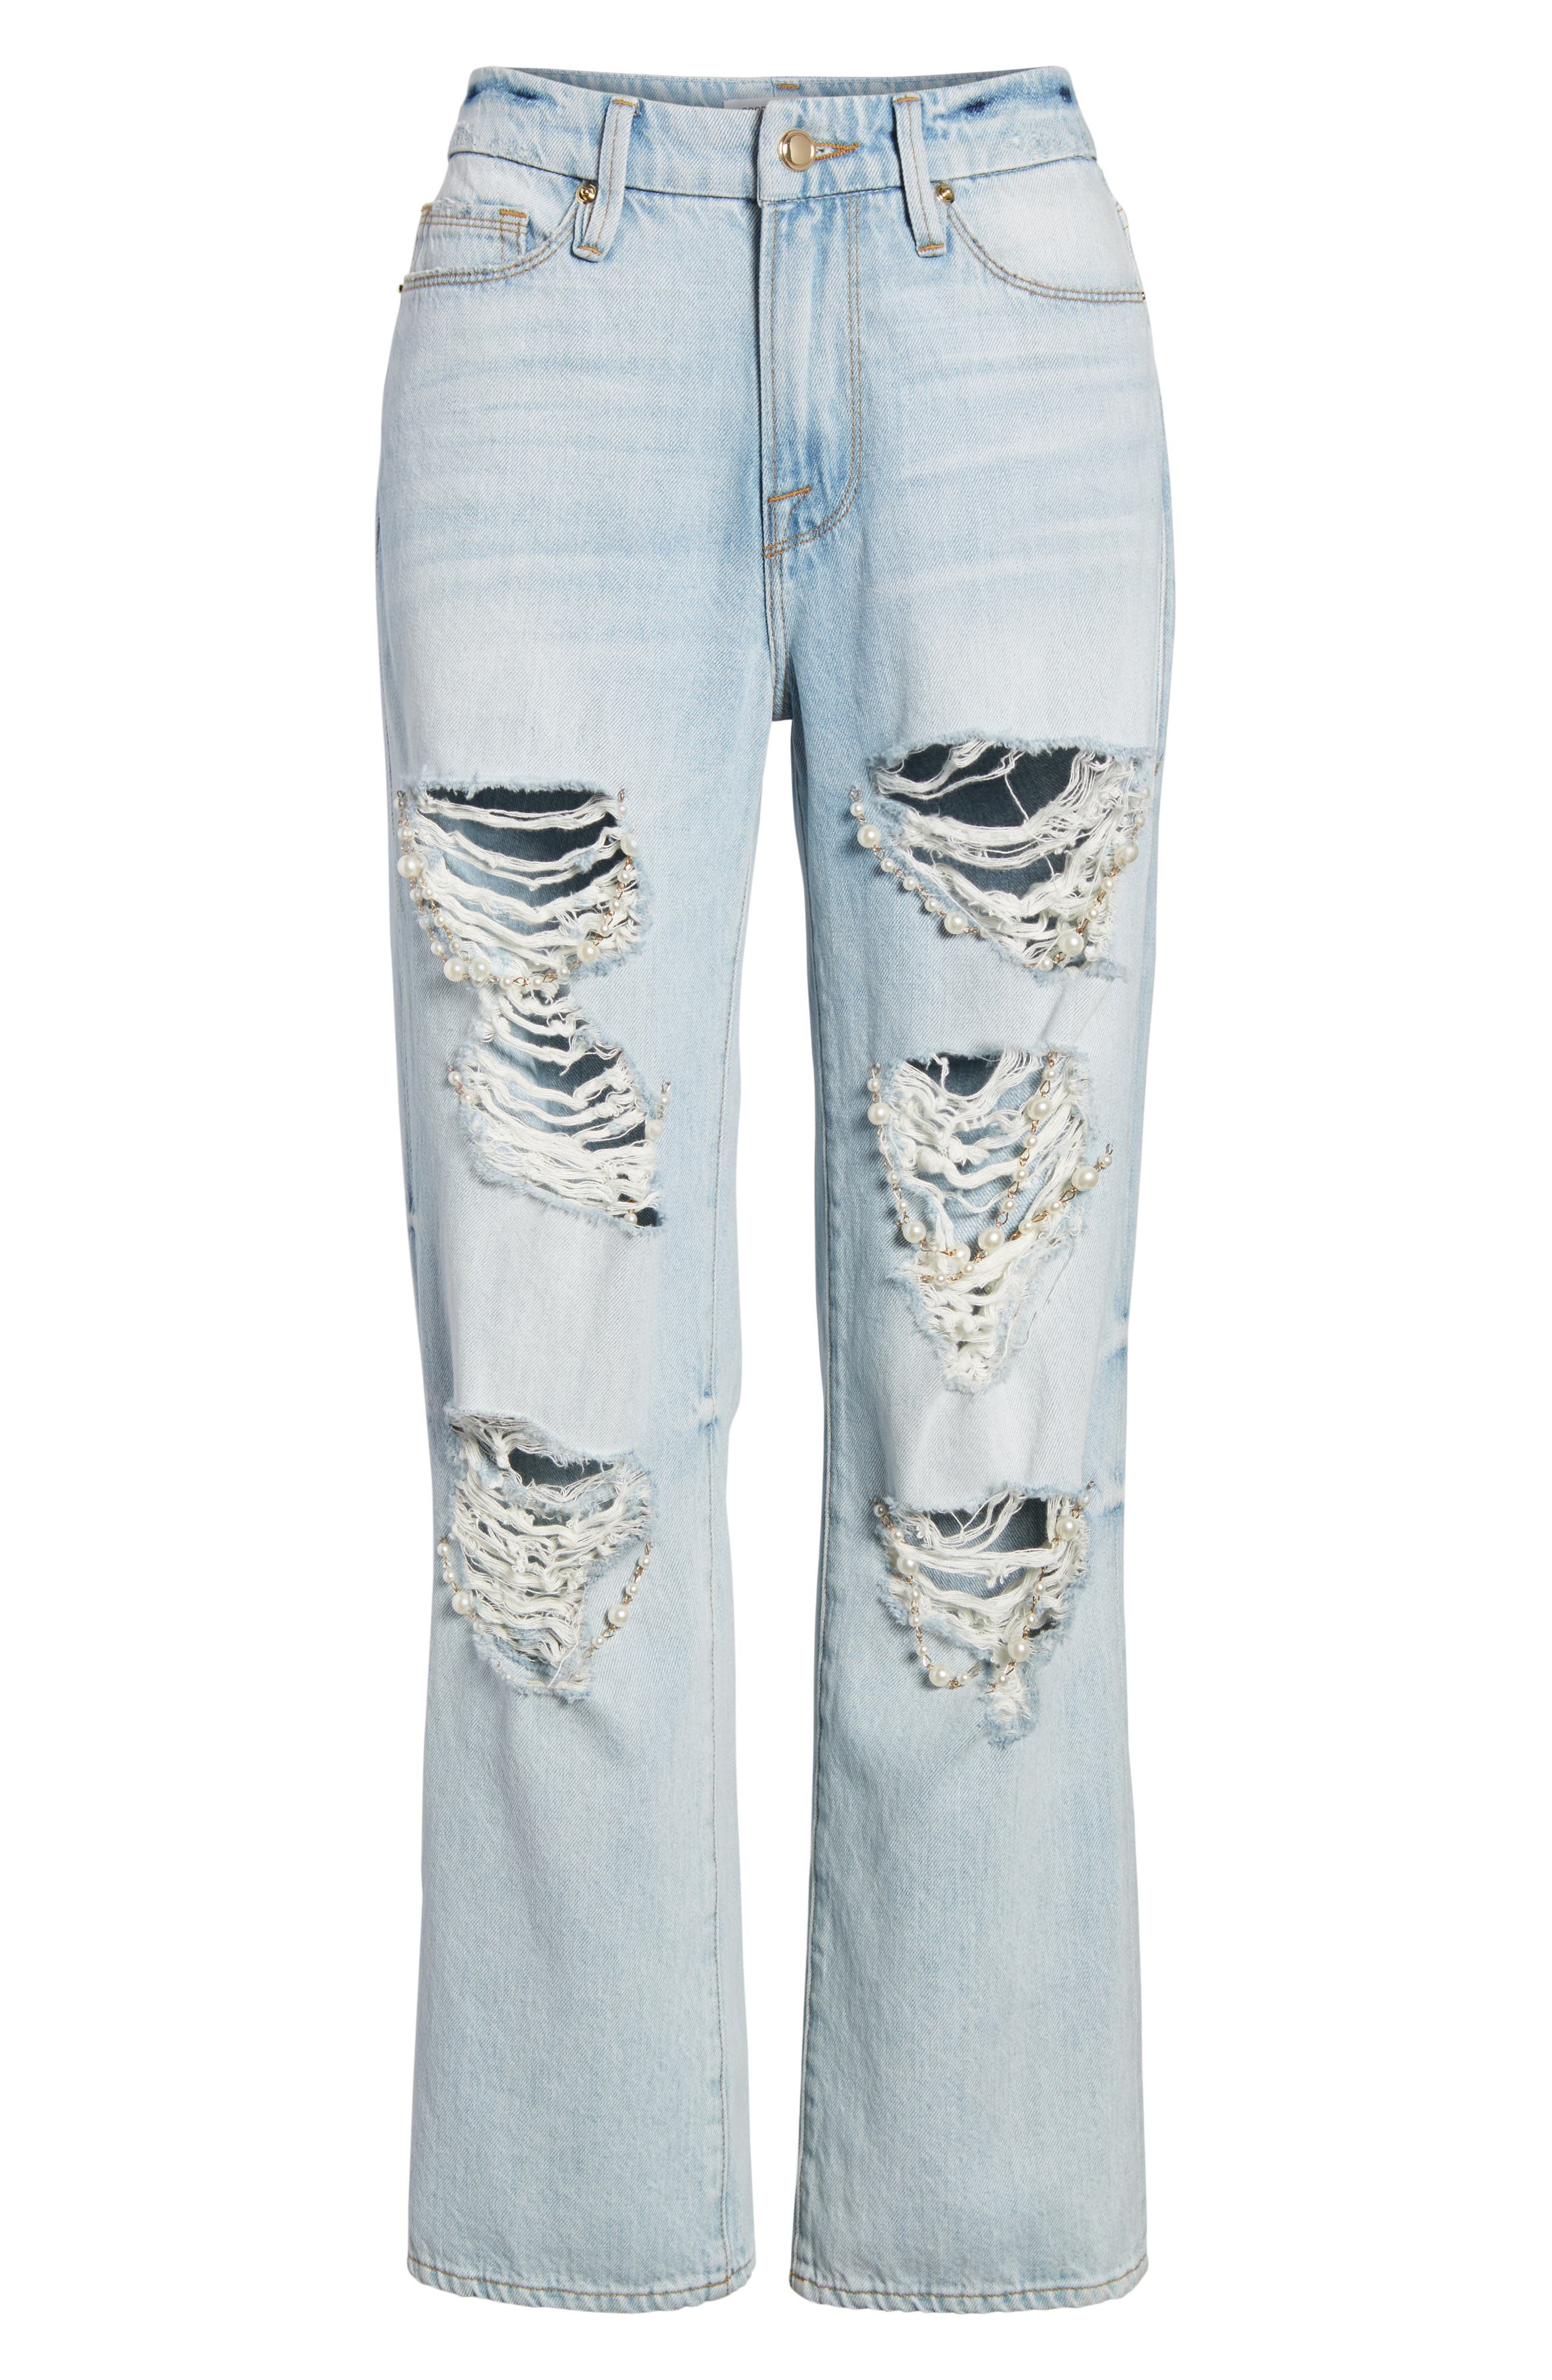 Good Straight Pearls High Waist Jeans,                             Alternate thumbnail 7, color,                             Blue143